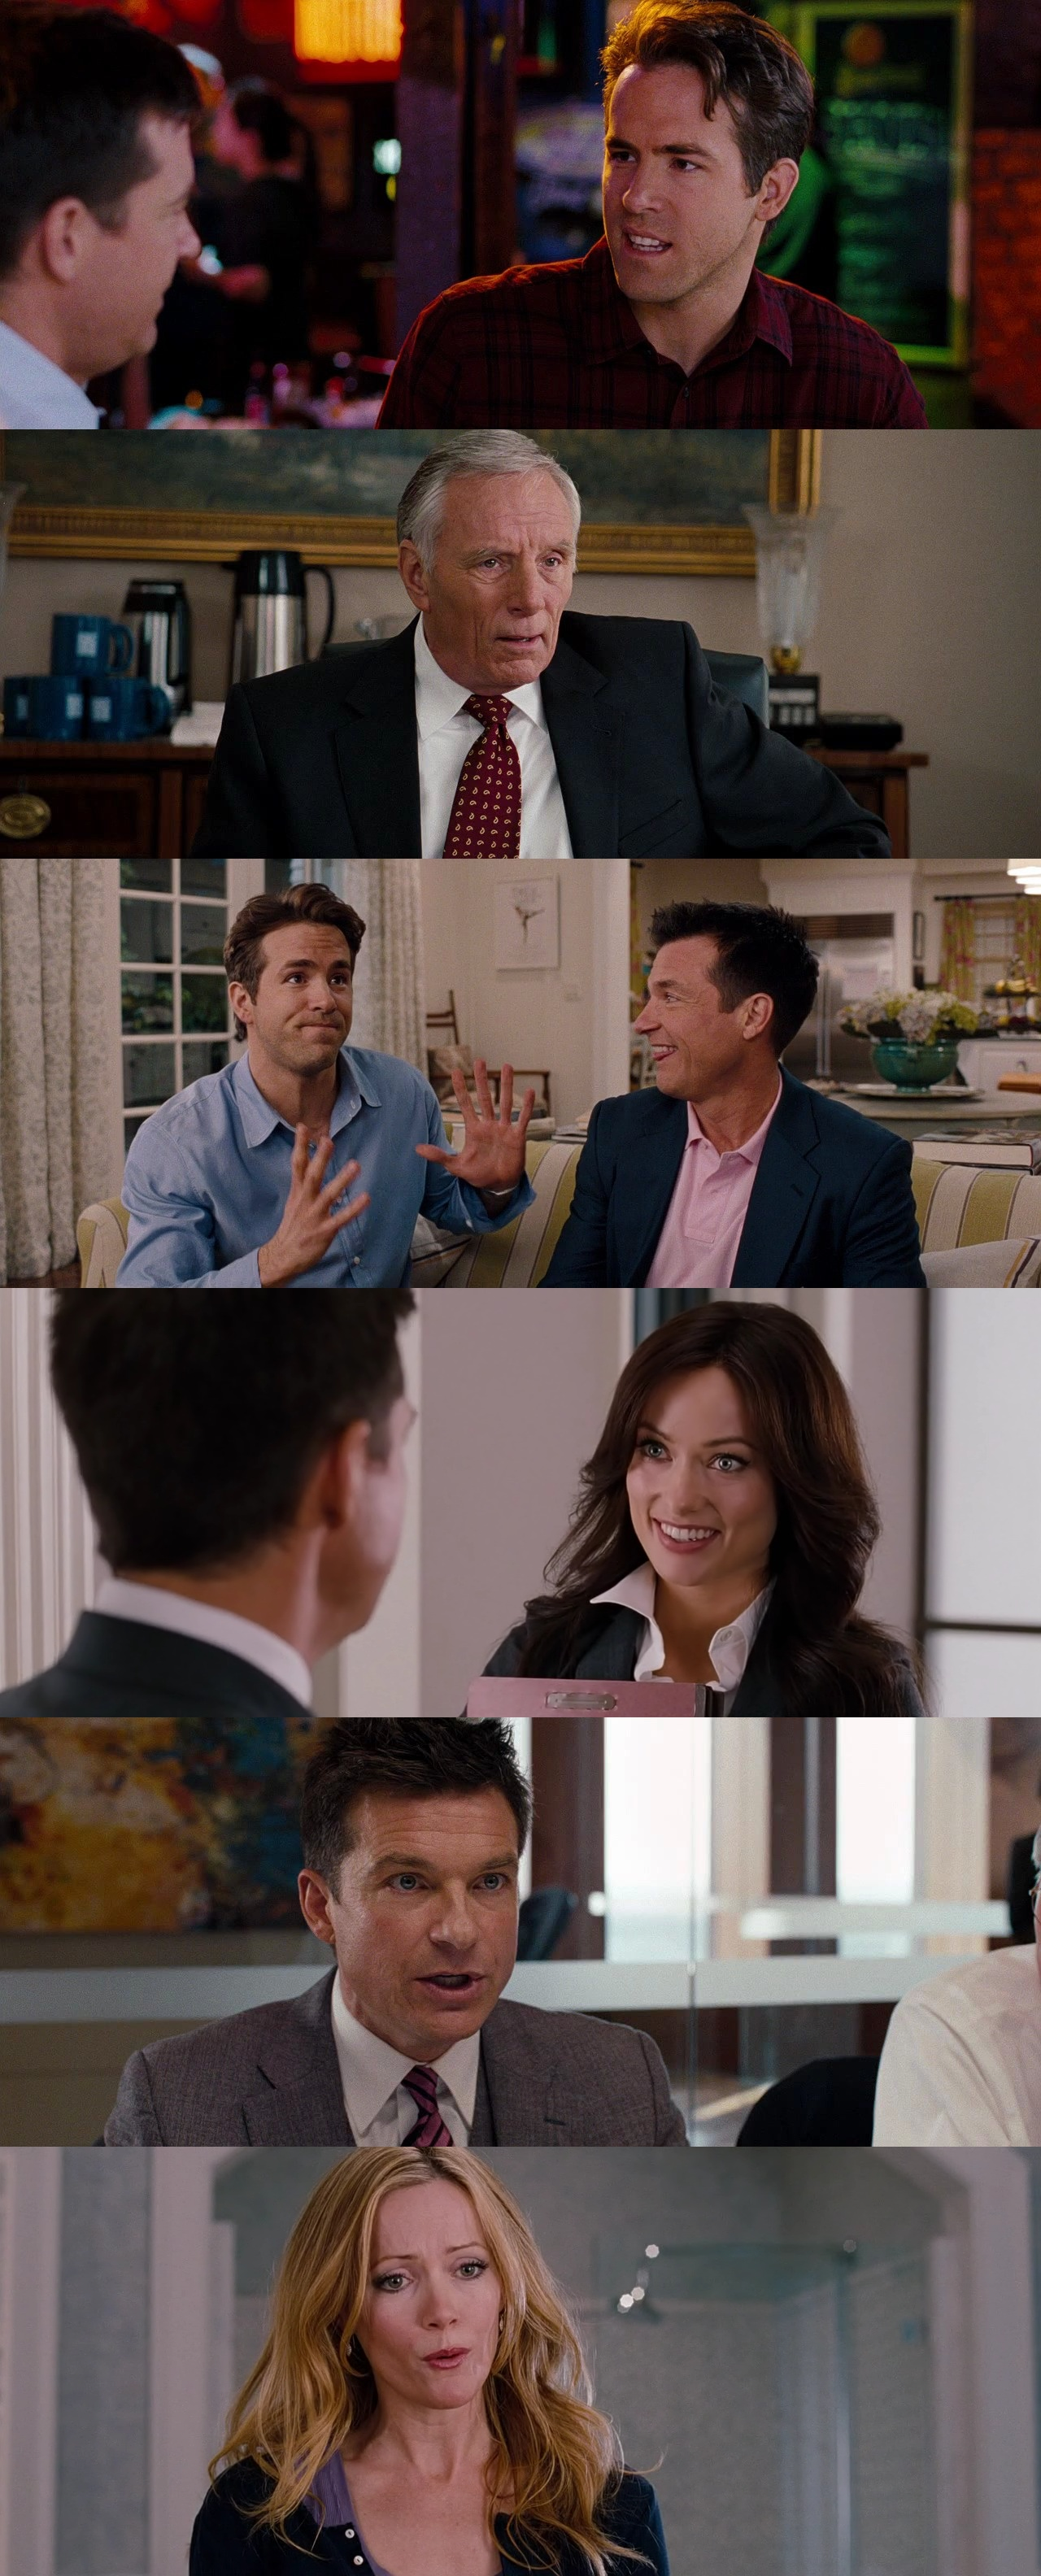 Si Fueras Yo (The Change-Up) (2011) 720p BRRip Dual ... Leslie Mann The Change Up Unrated